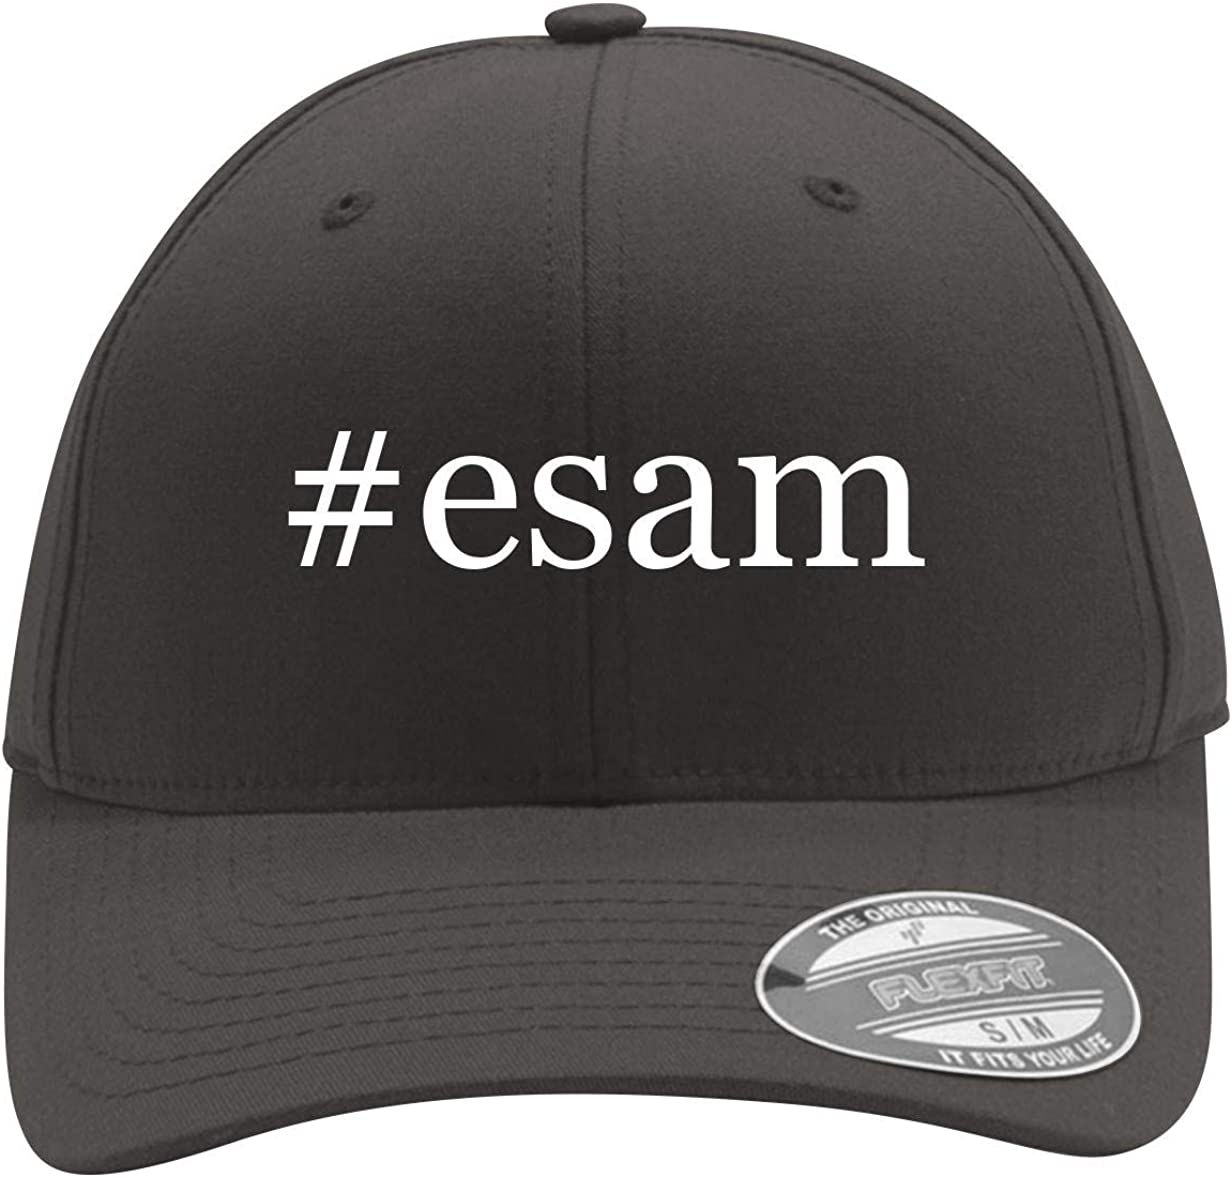 #Esam - Men's Hashtag Flexfit Baseball Cap Hat